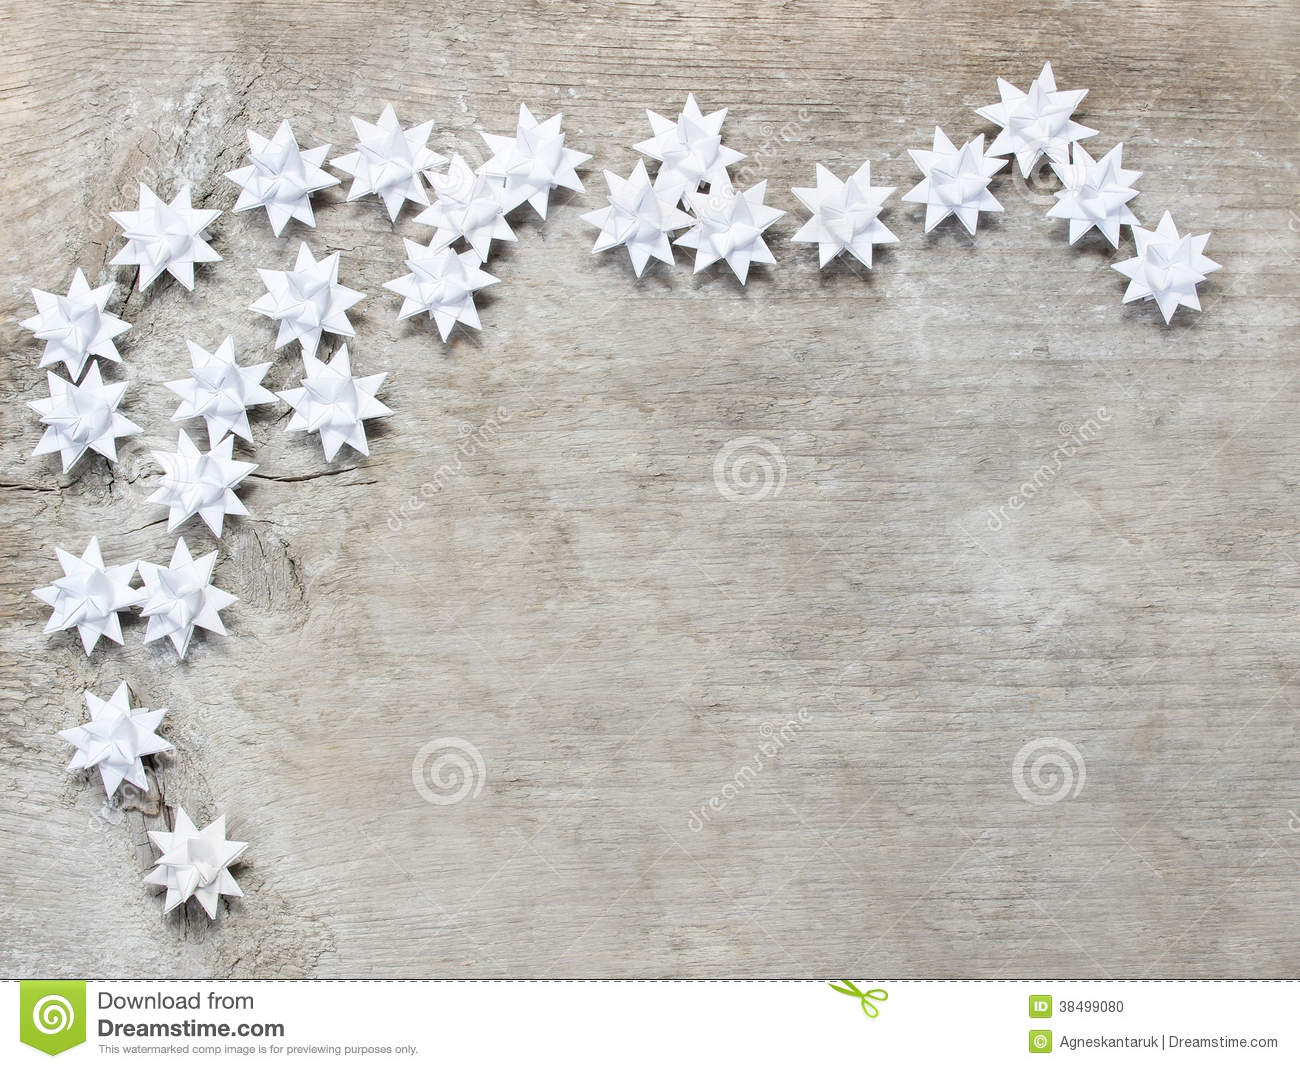 Paper stars on wooden rough background.